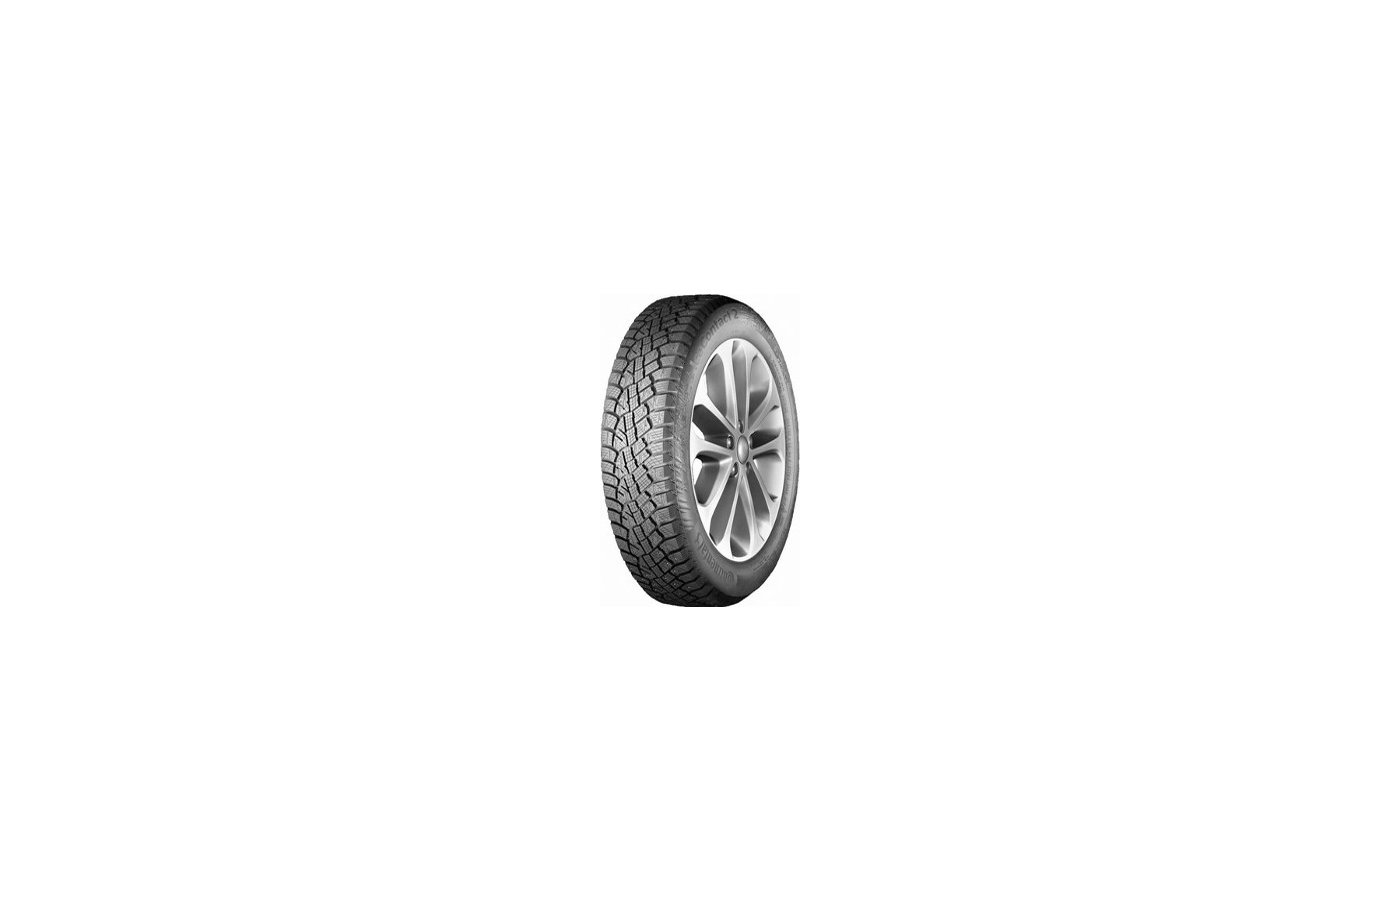 Шина Continental ContiIceContact 2 195/65 R15 TL 95T XL шип